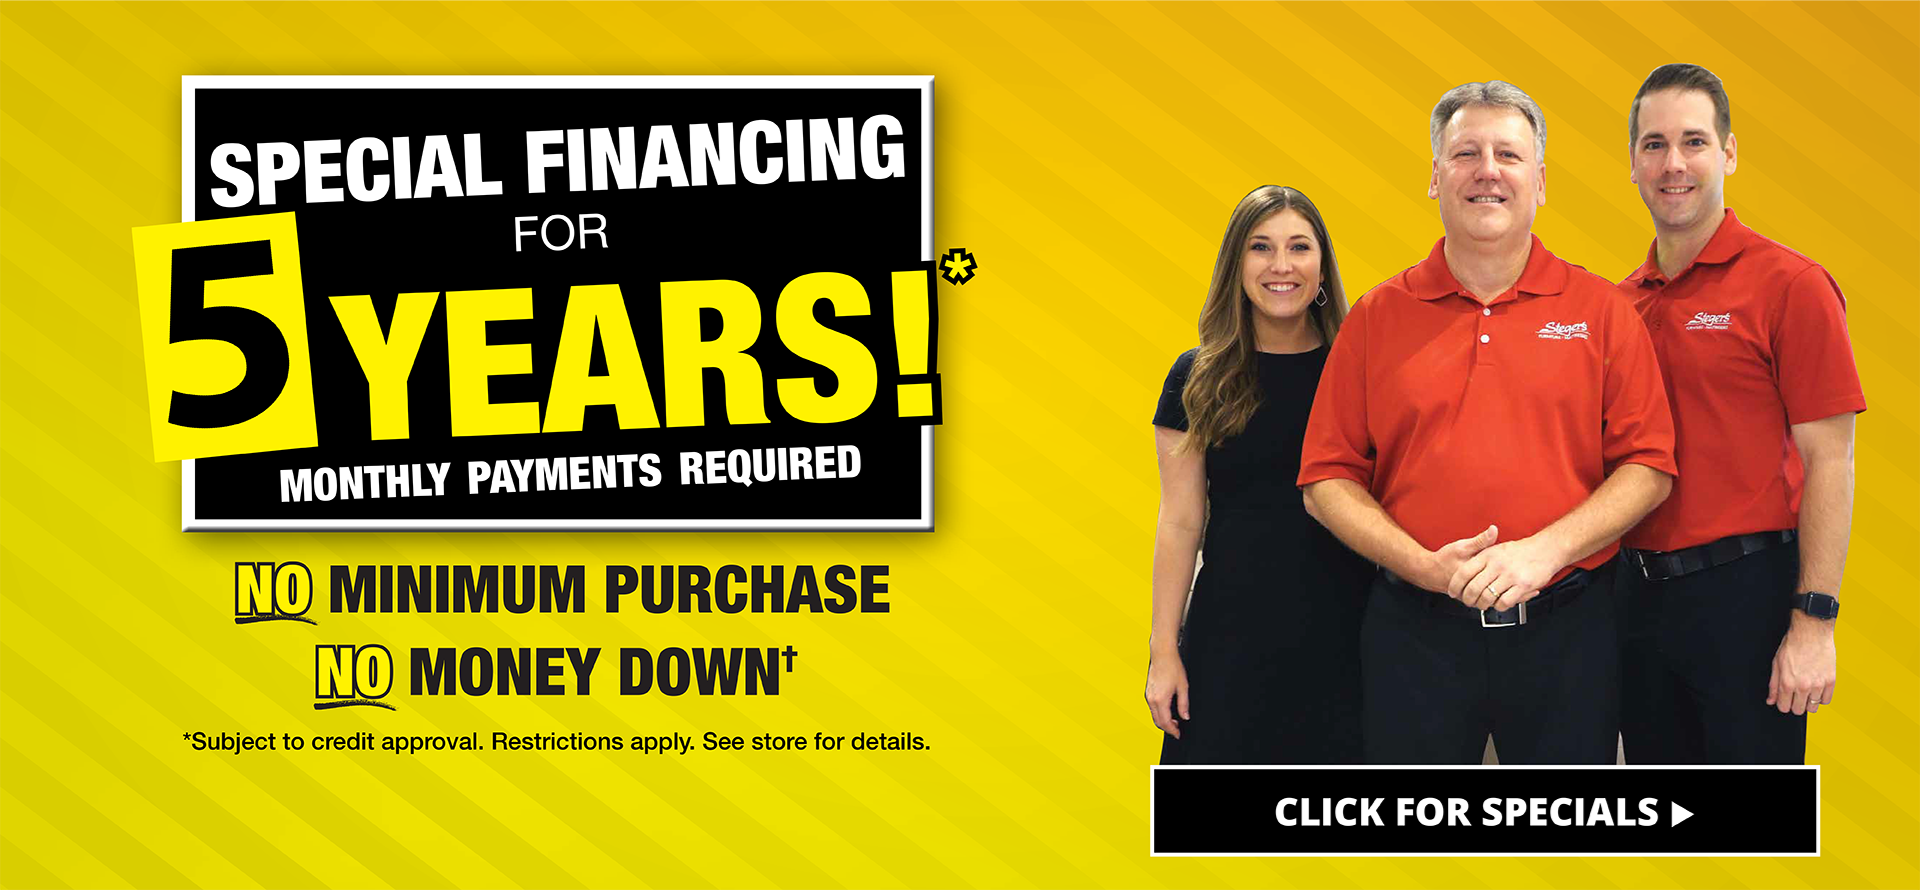 Special Financing for 5 Years